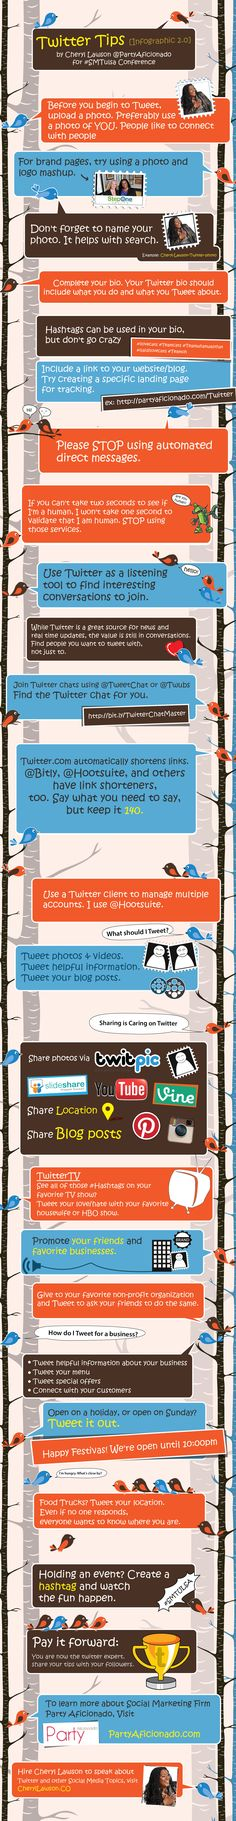 Twitter Tips: How To Get Started On Twitter [INFOGRAPHIC]